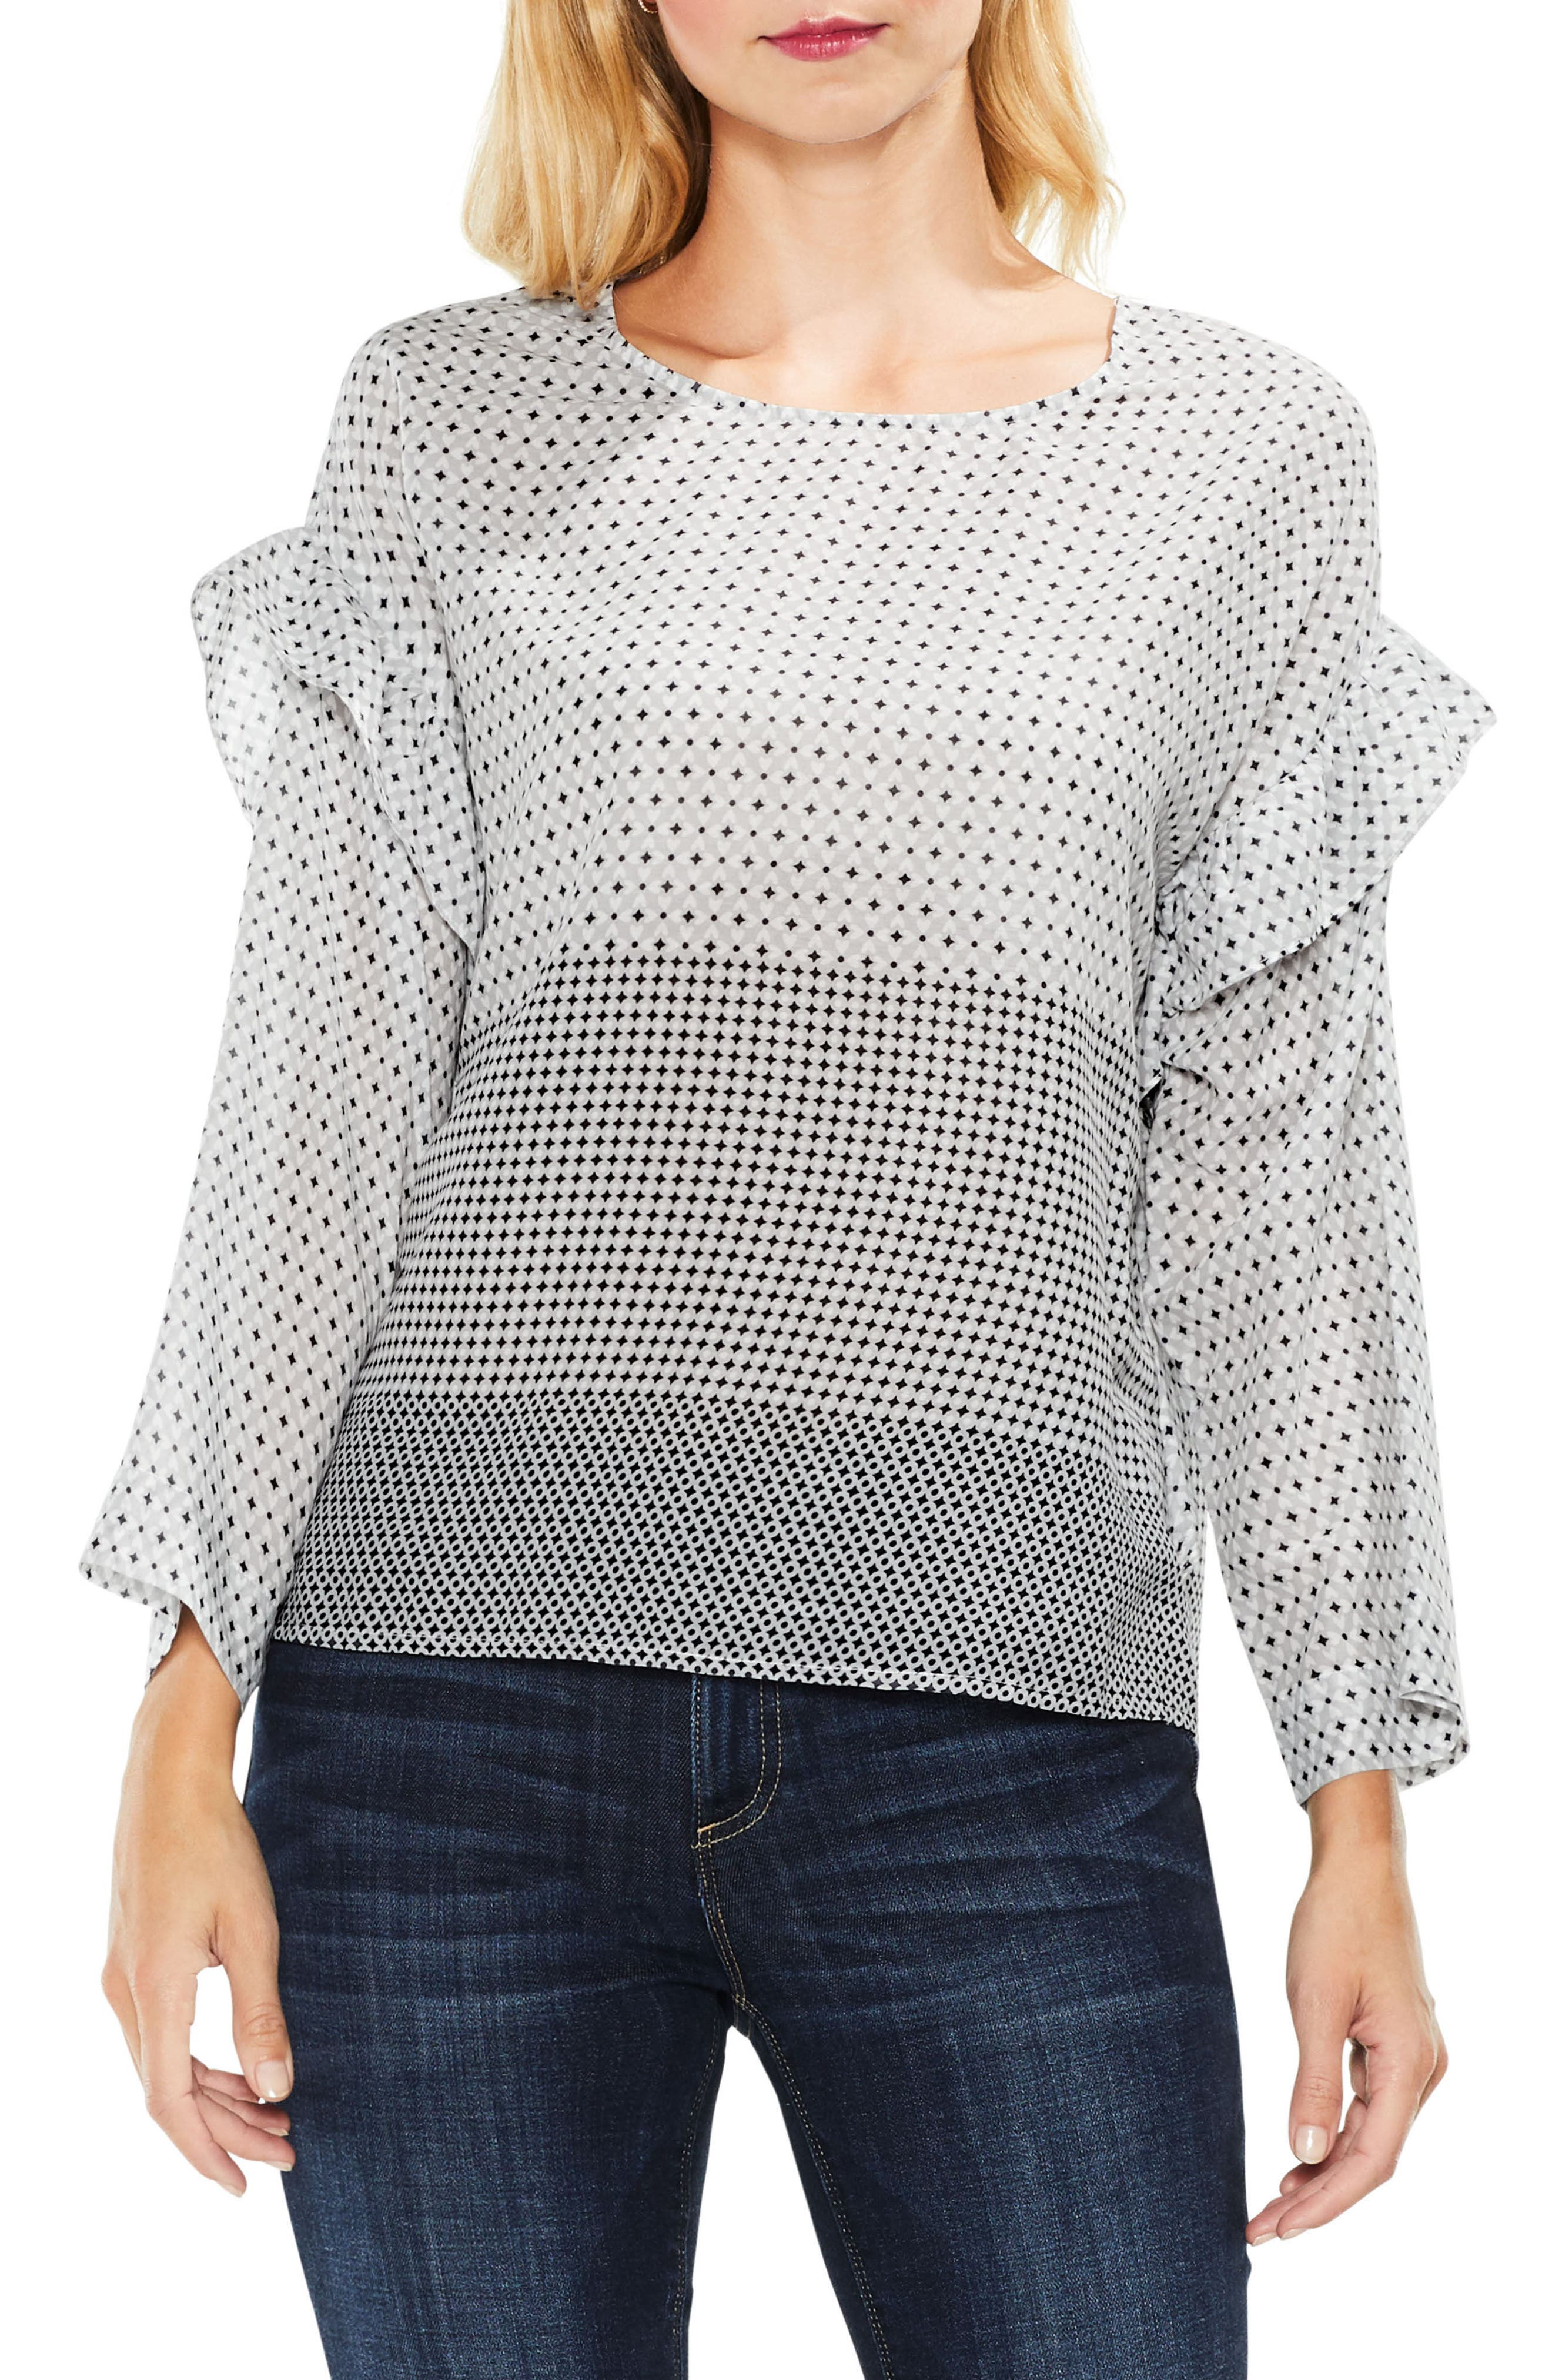 Two by VInce Camuto Quiet Tile Border Ruffle Top,                             Main thumbnail 1, color,                             Magnet